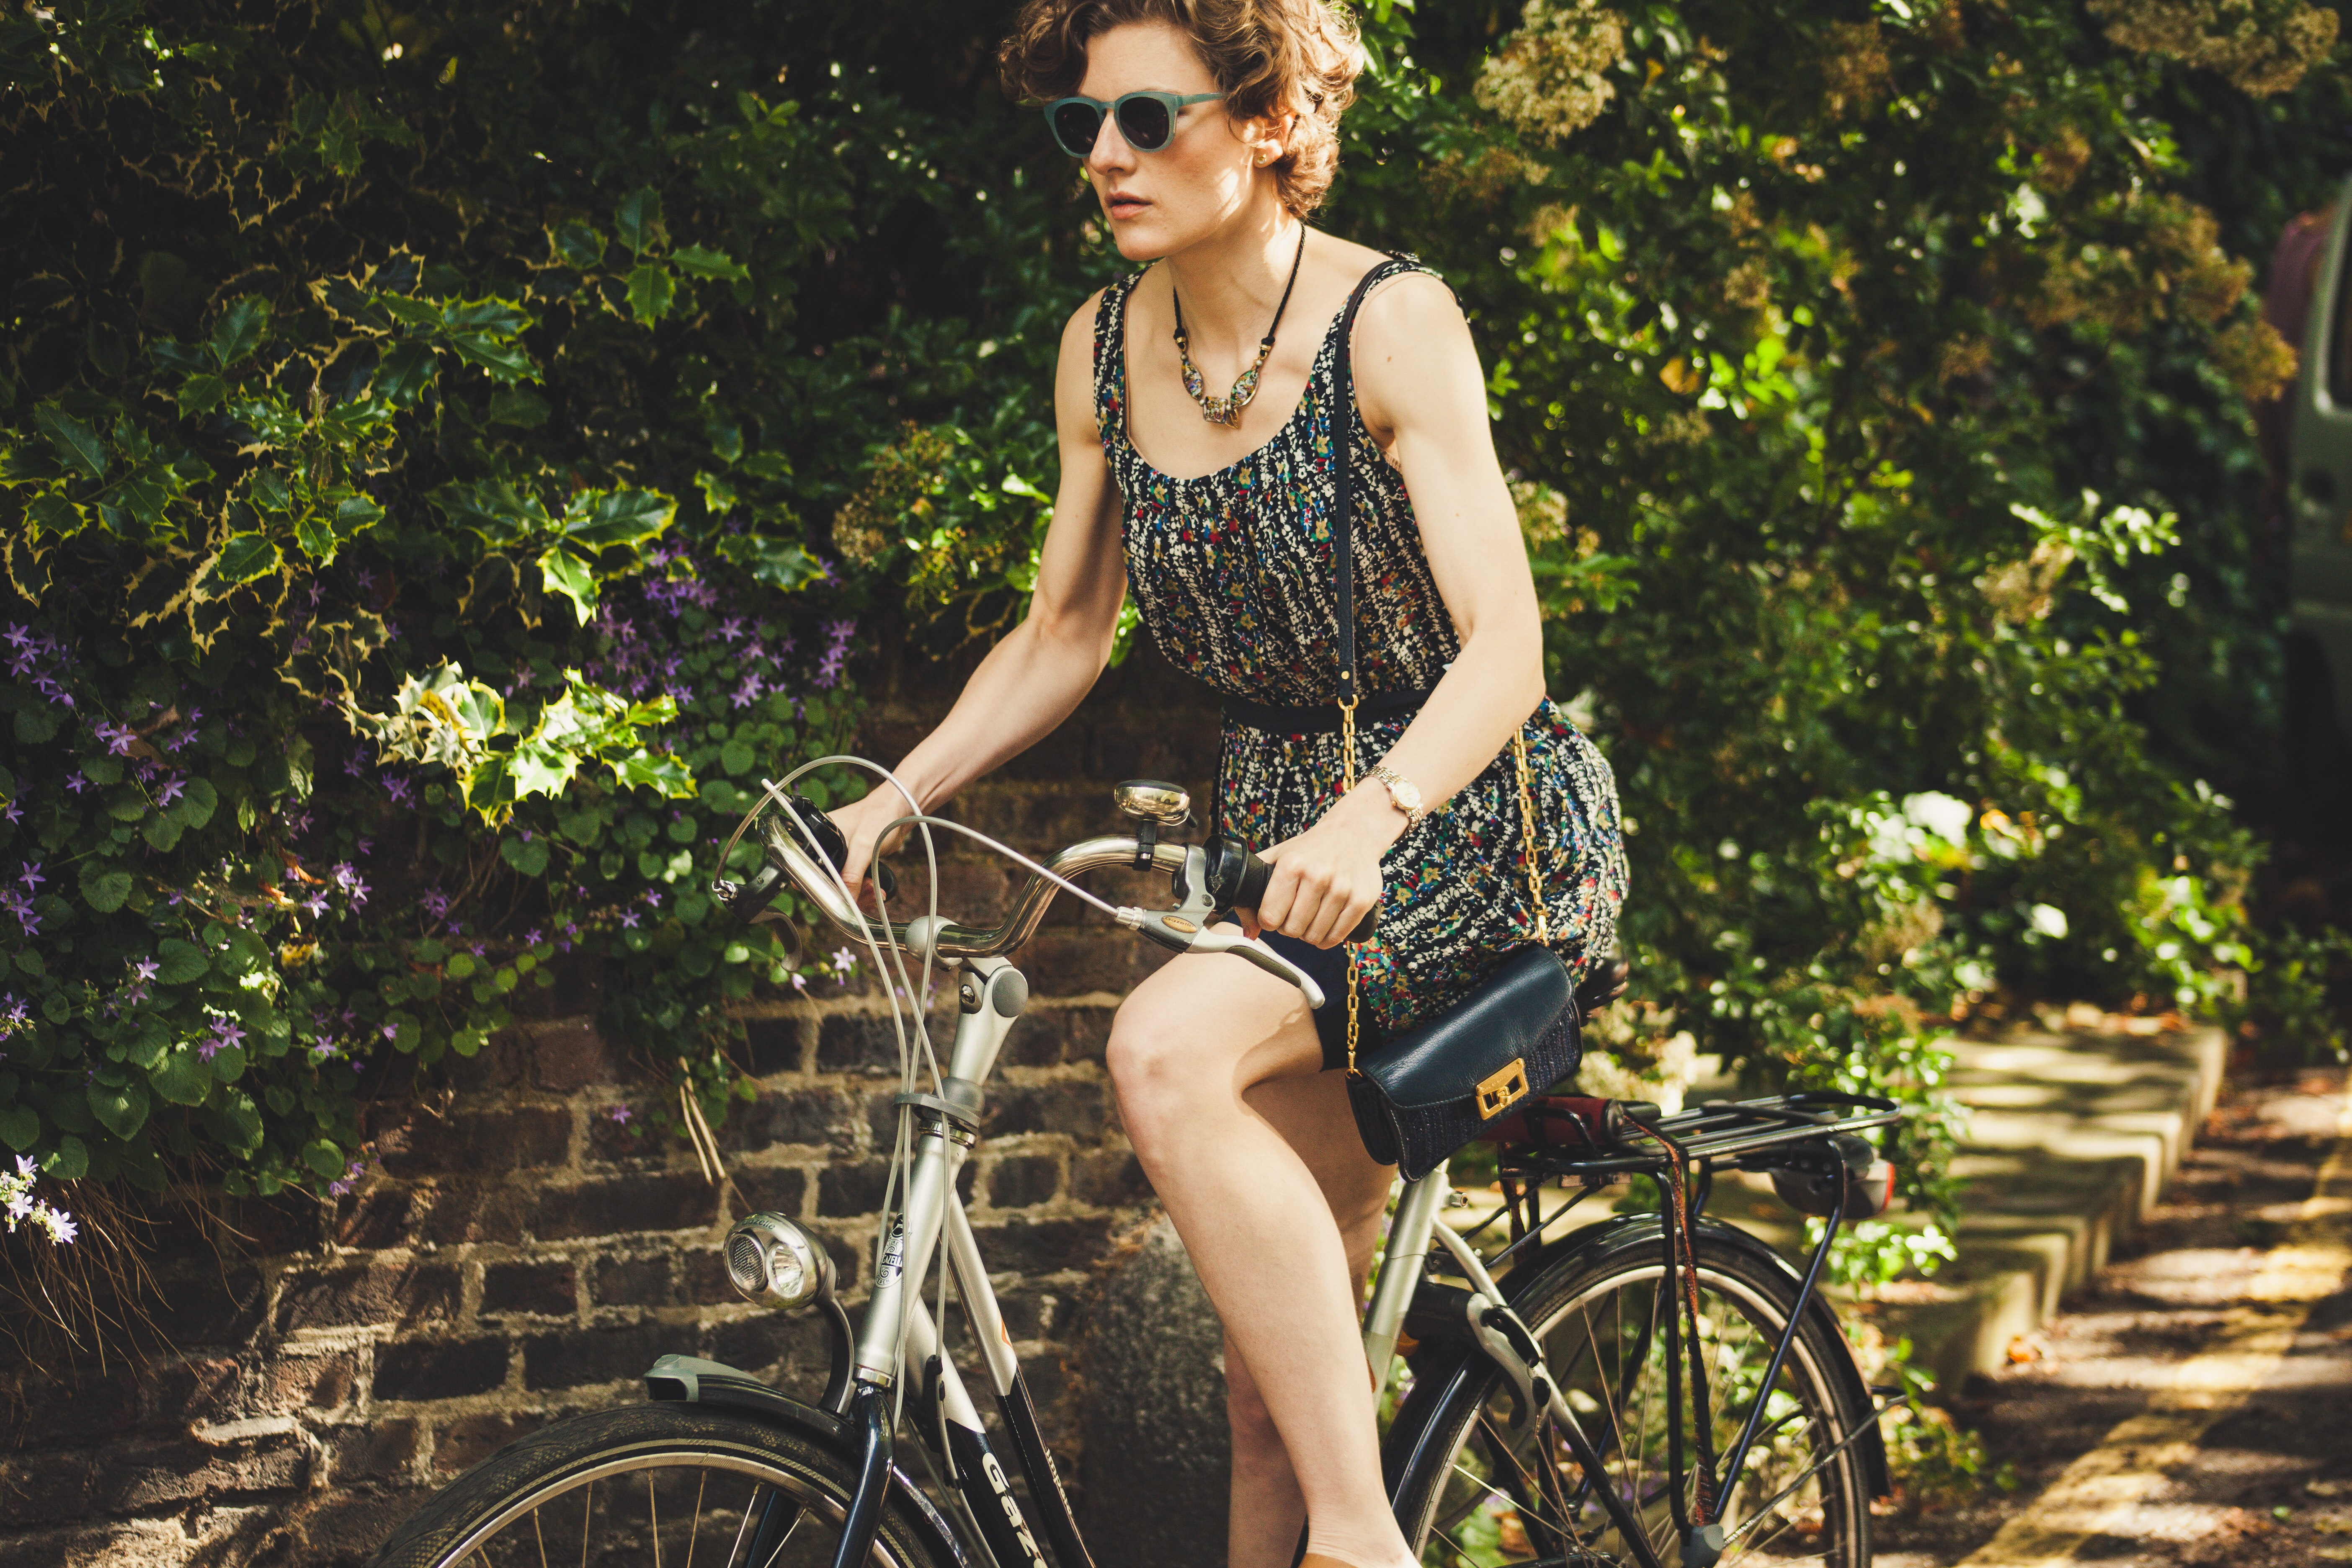 Woman wearing gold watch, dress, and purse and riding vintage bike through London